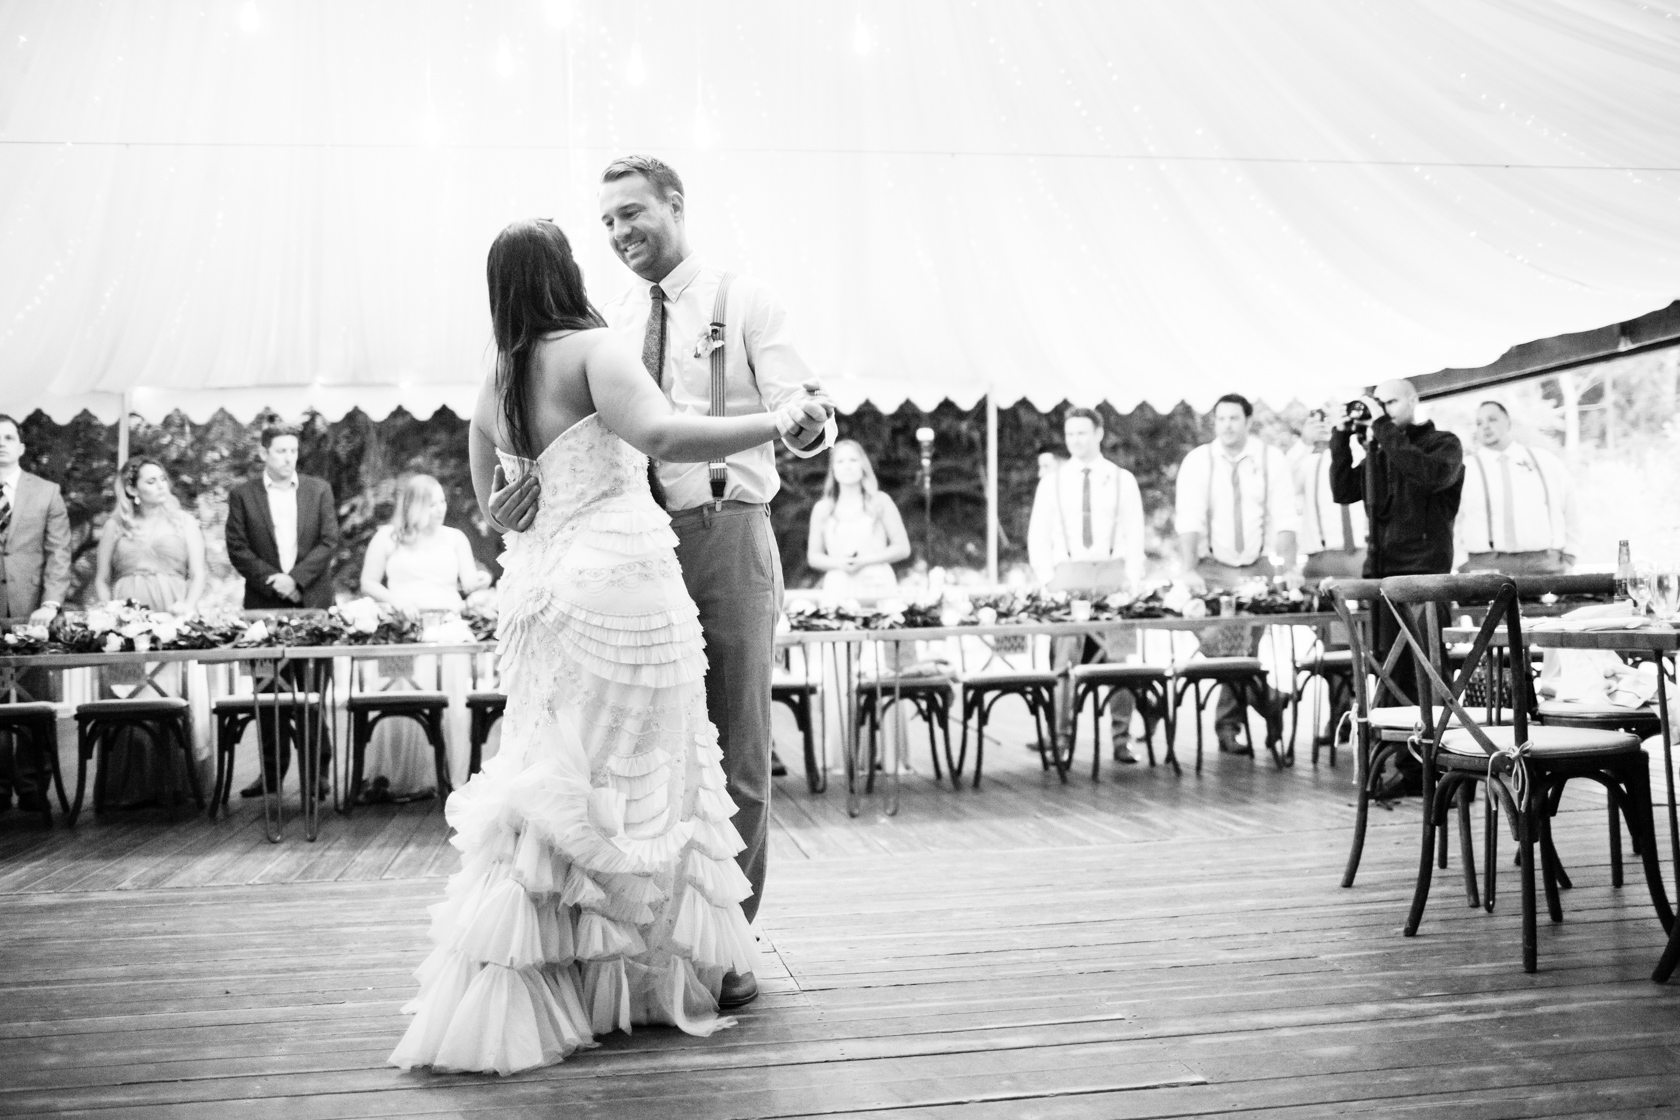 The_Printed_Palette_Wedding_at_Calamigos_Ranch_112.jpg